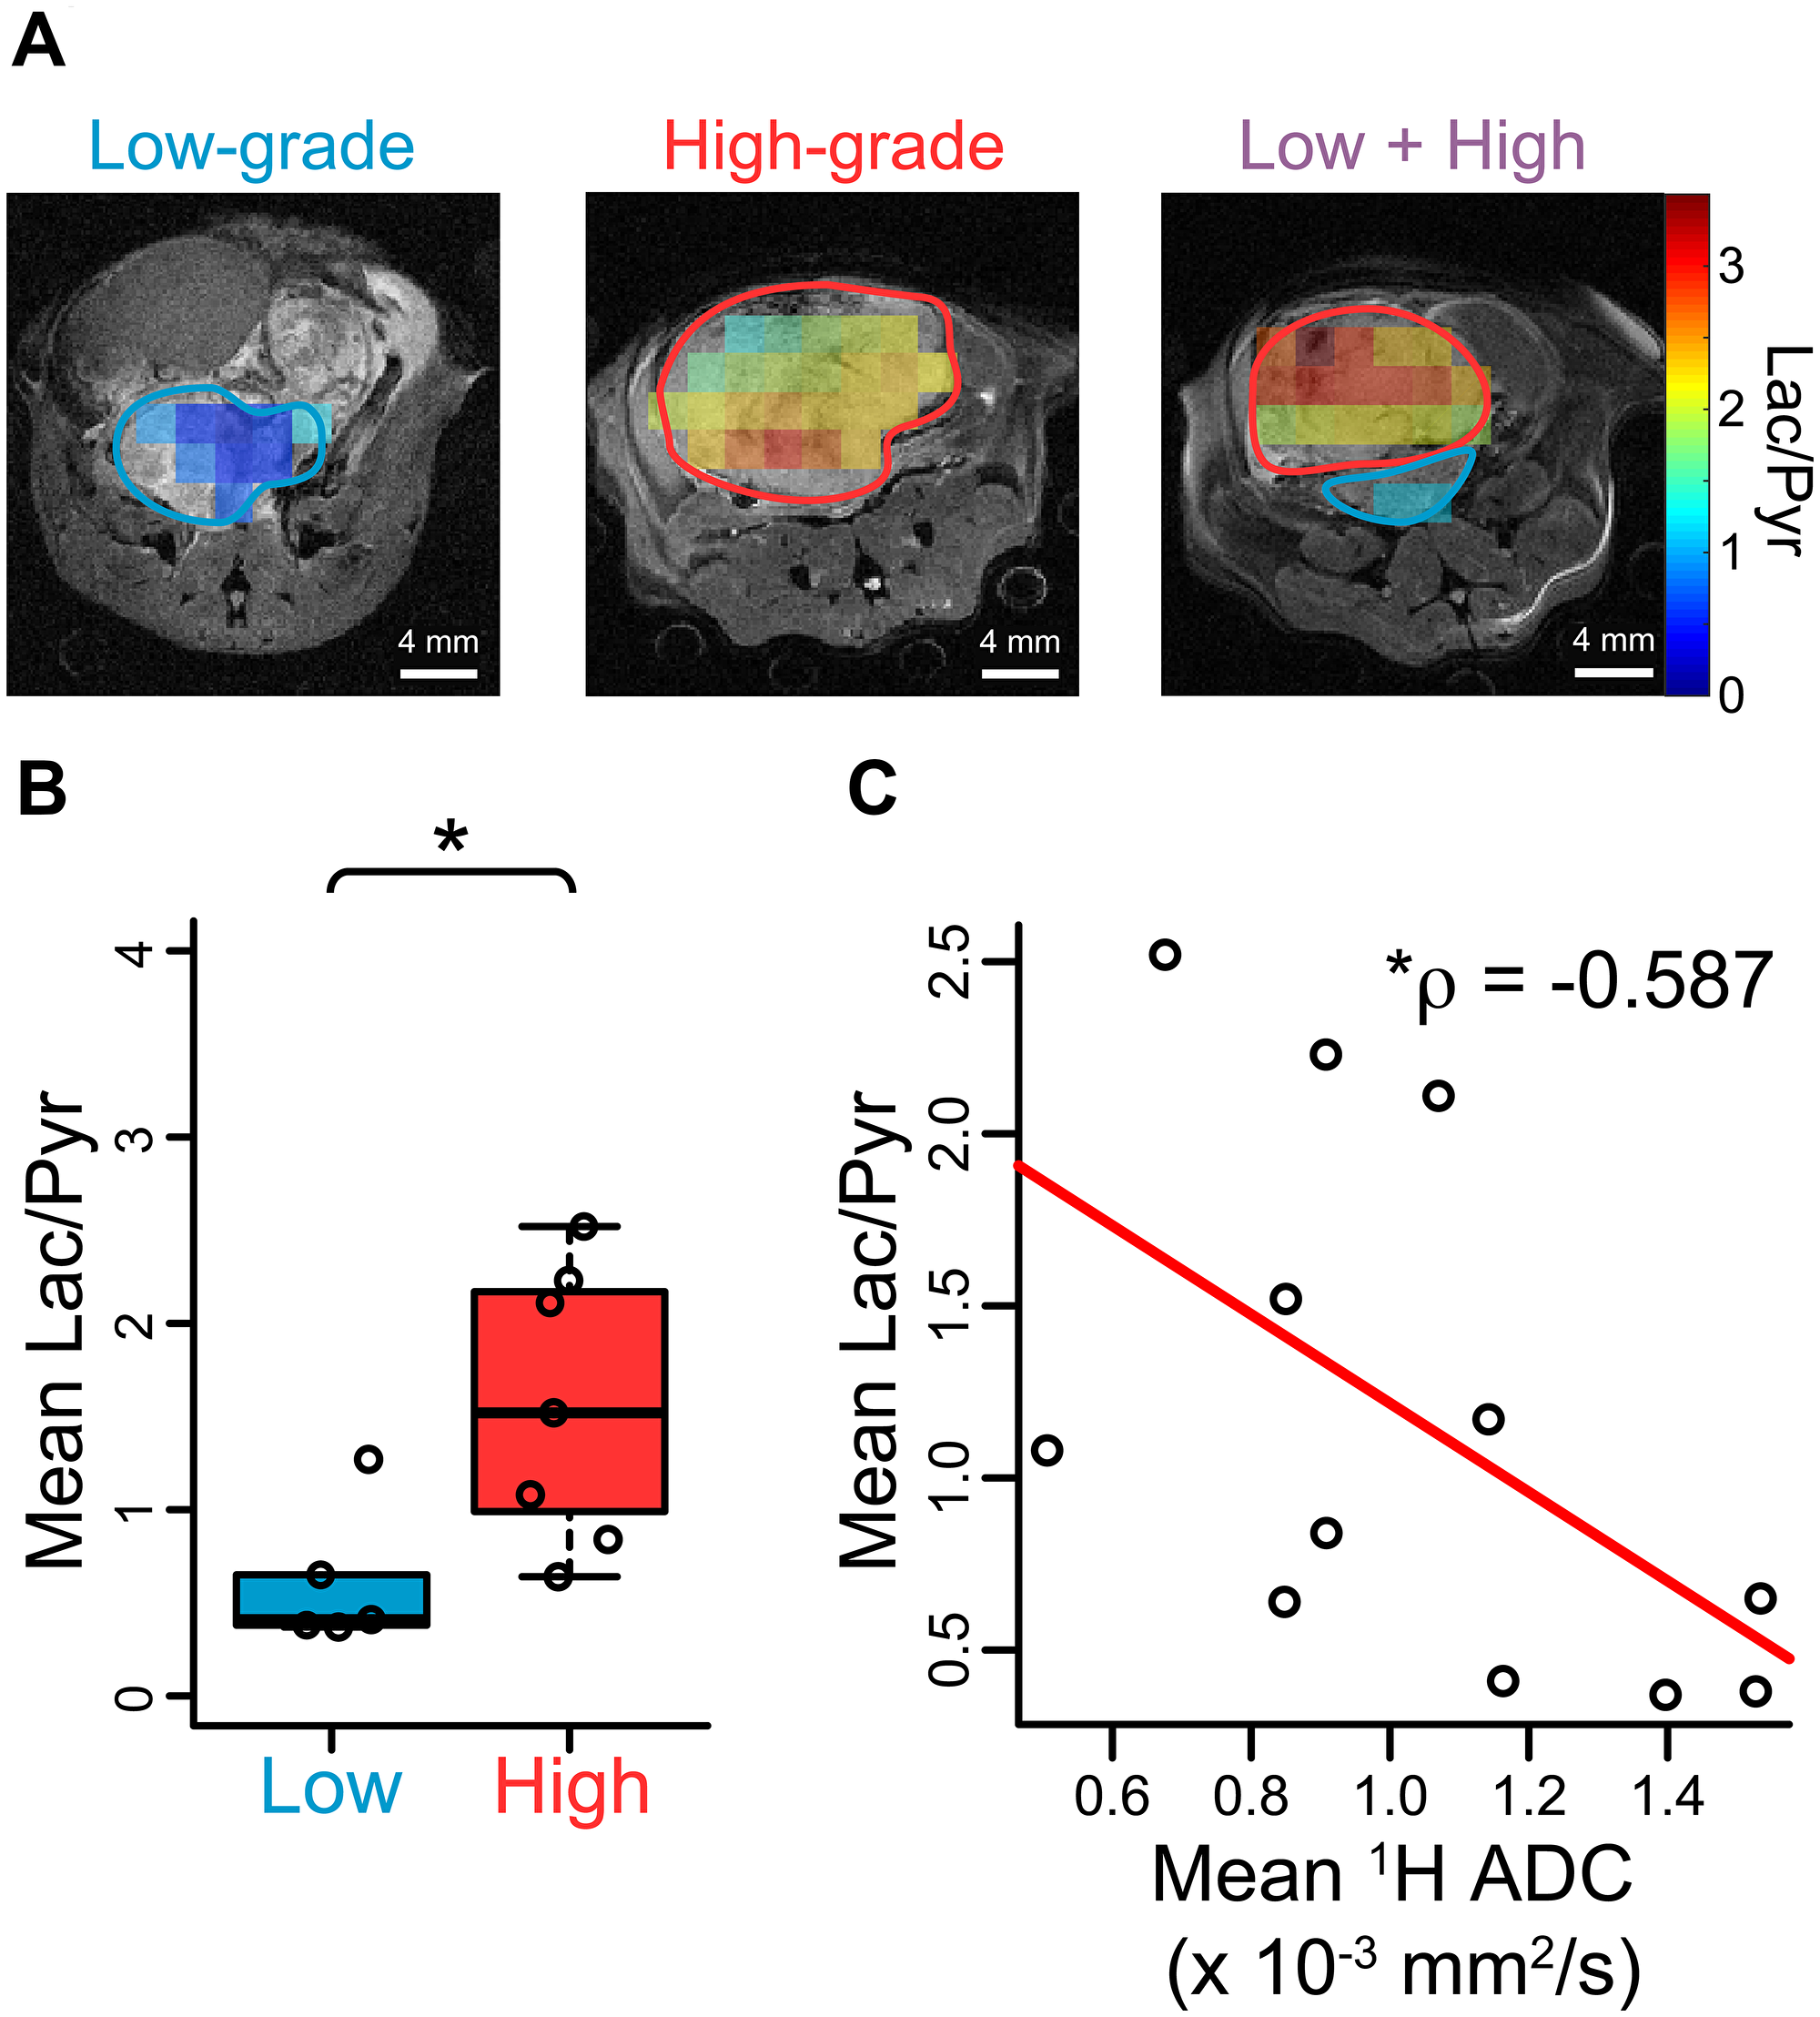 Hyperpolarized [1-13C] pyruvate imaging in TRAMP mice confirms glycolytic differences between low- and high-grade cancers.